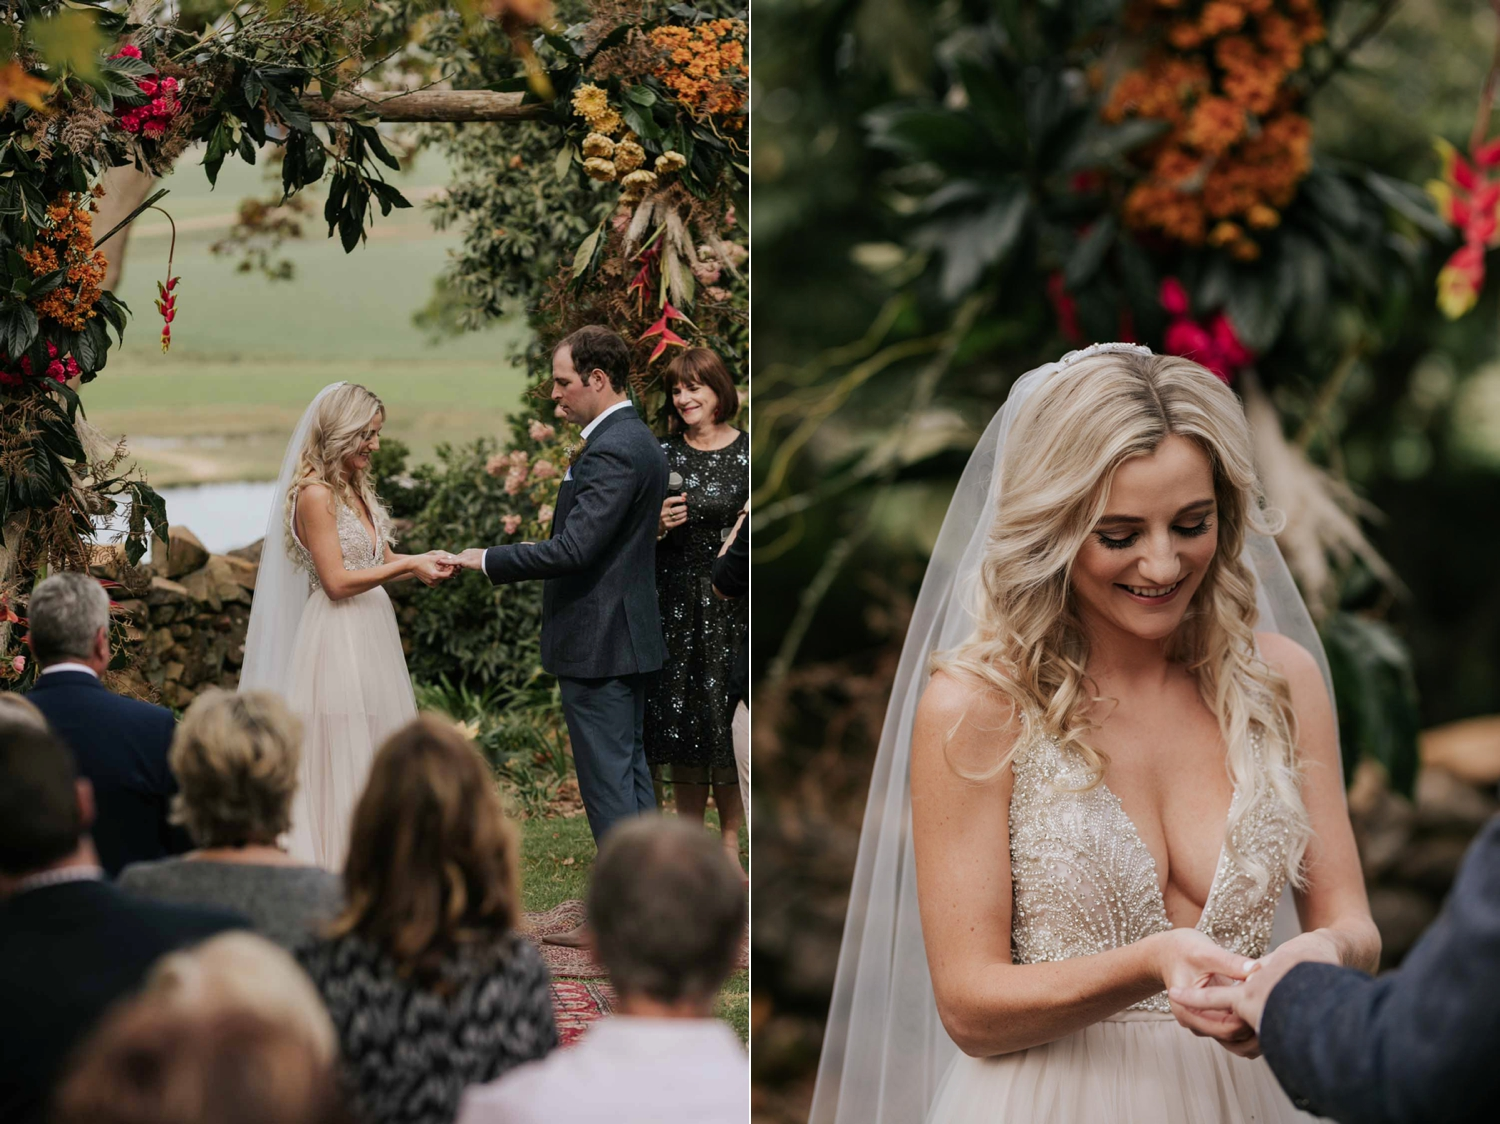 Bride putting a ring on groom's finger. Bride wearing a low cut dress with beautiful and detailed beadwork with a skirt that is see through and cute shorts underneath almost like a jump suit underneath a wedding dress. She is holding a wedding bouquet of burnt orange pink and red flowers and roses with dried ferns and grass in it.